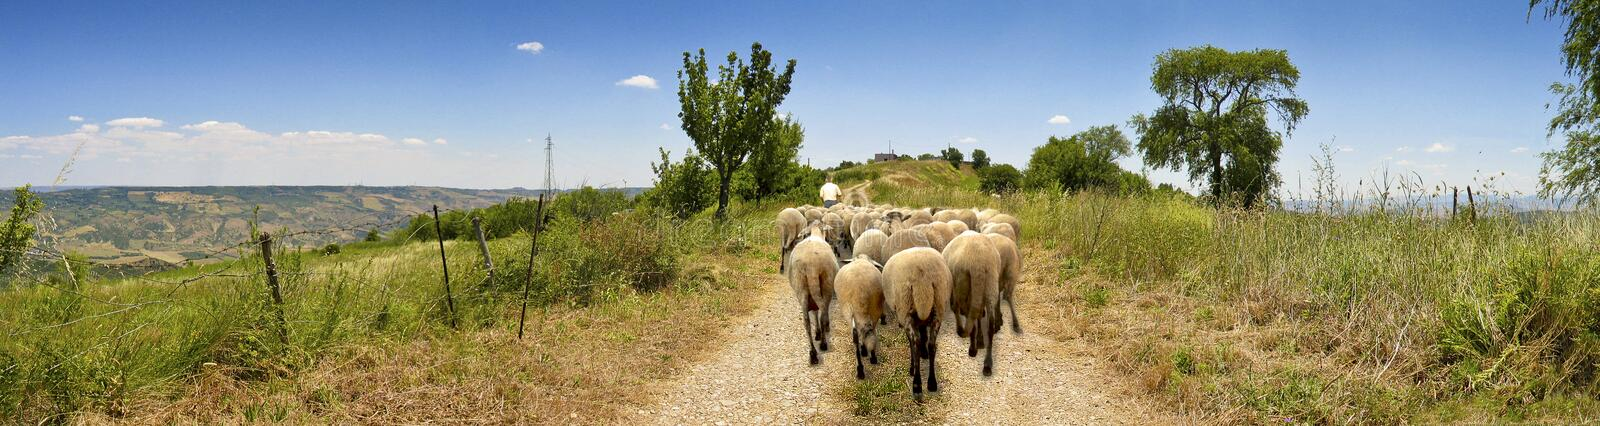 Landscape country road with sheep and shepherd stock images